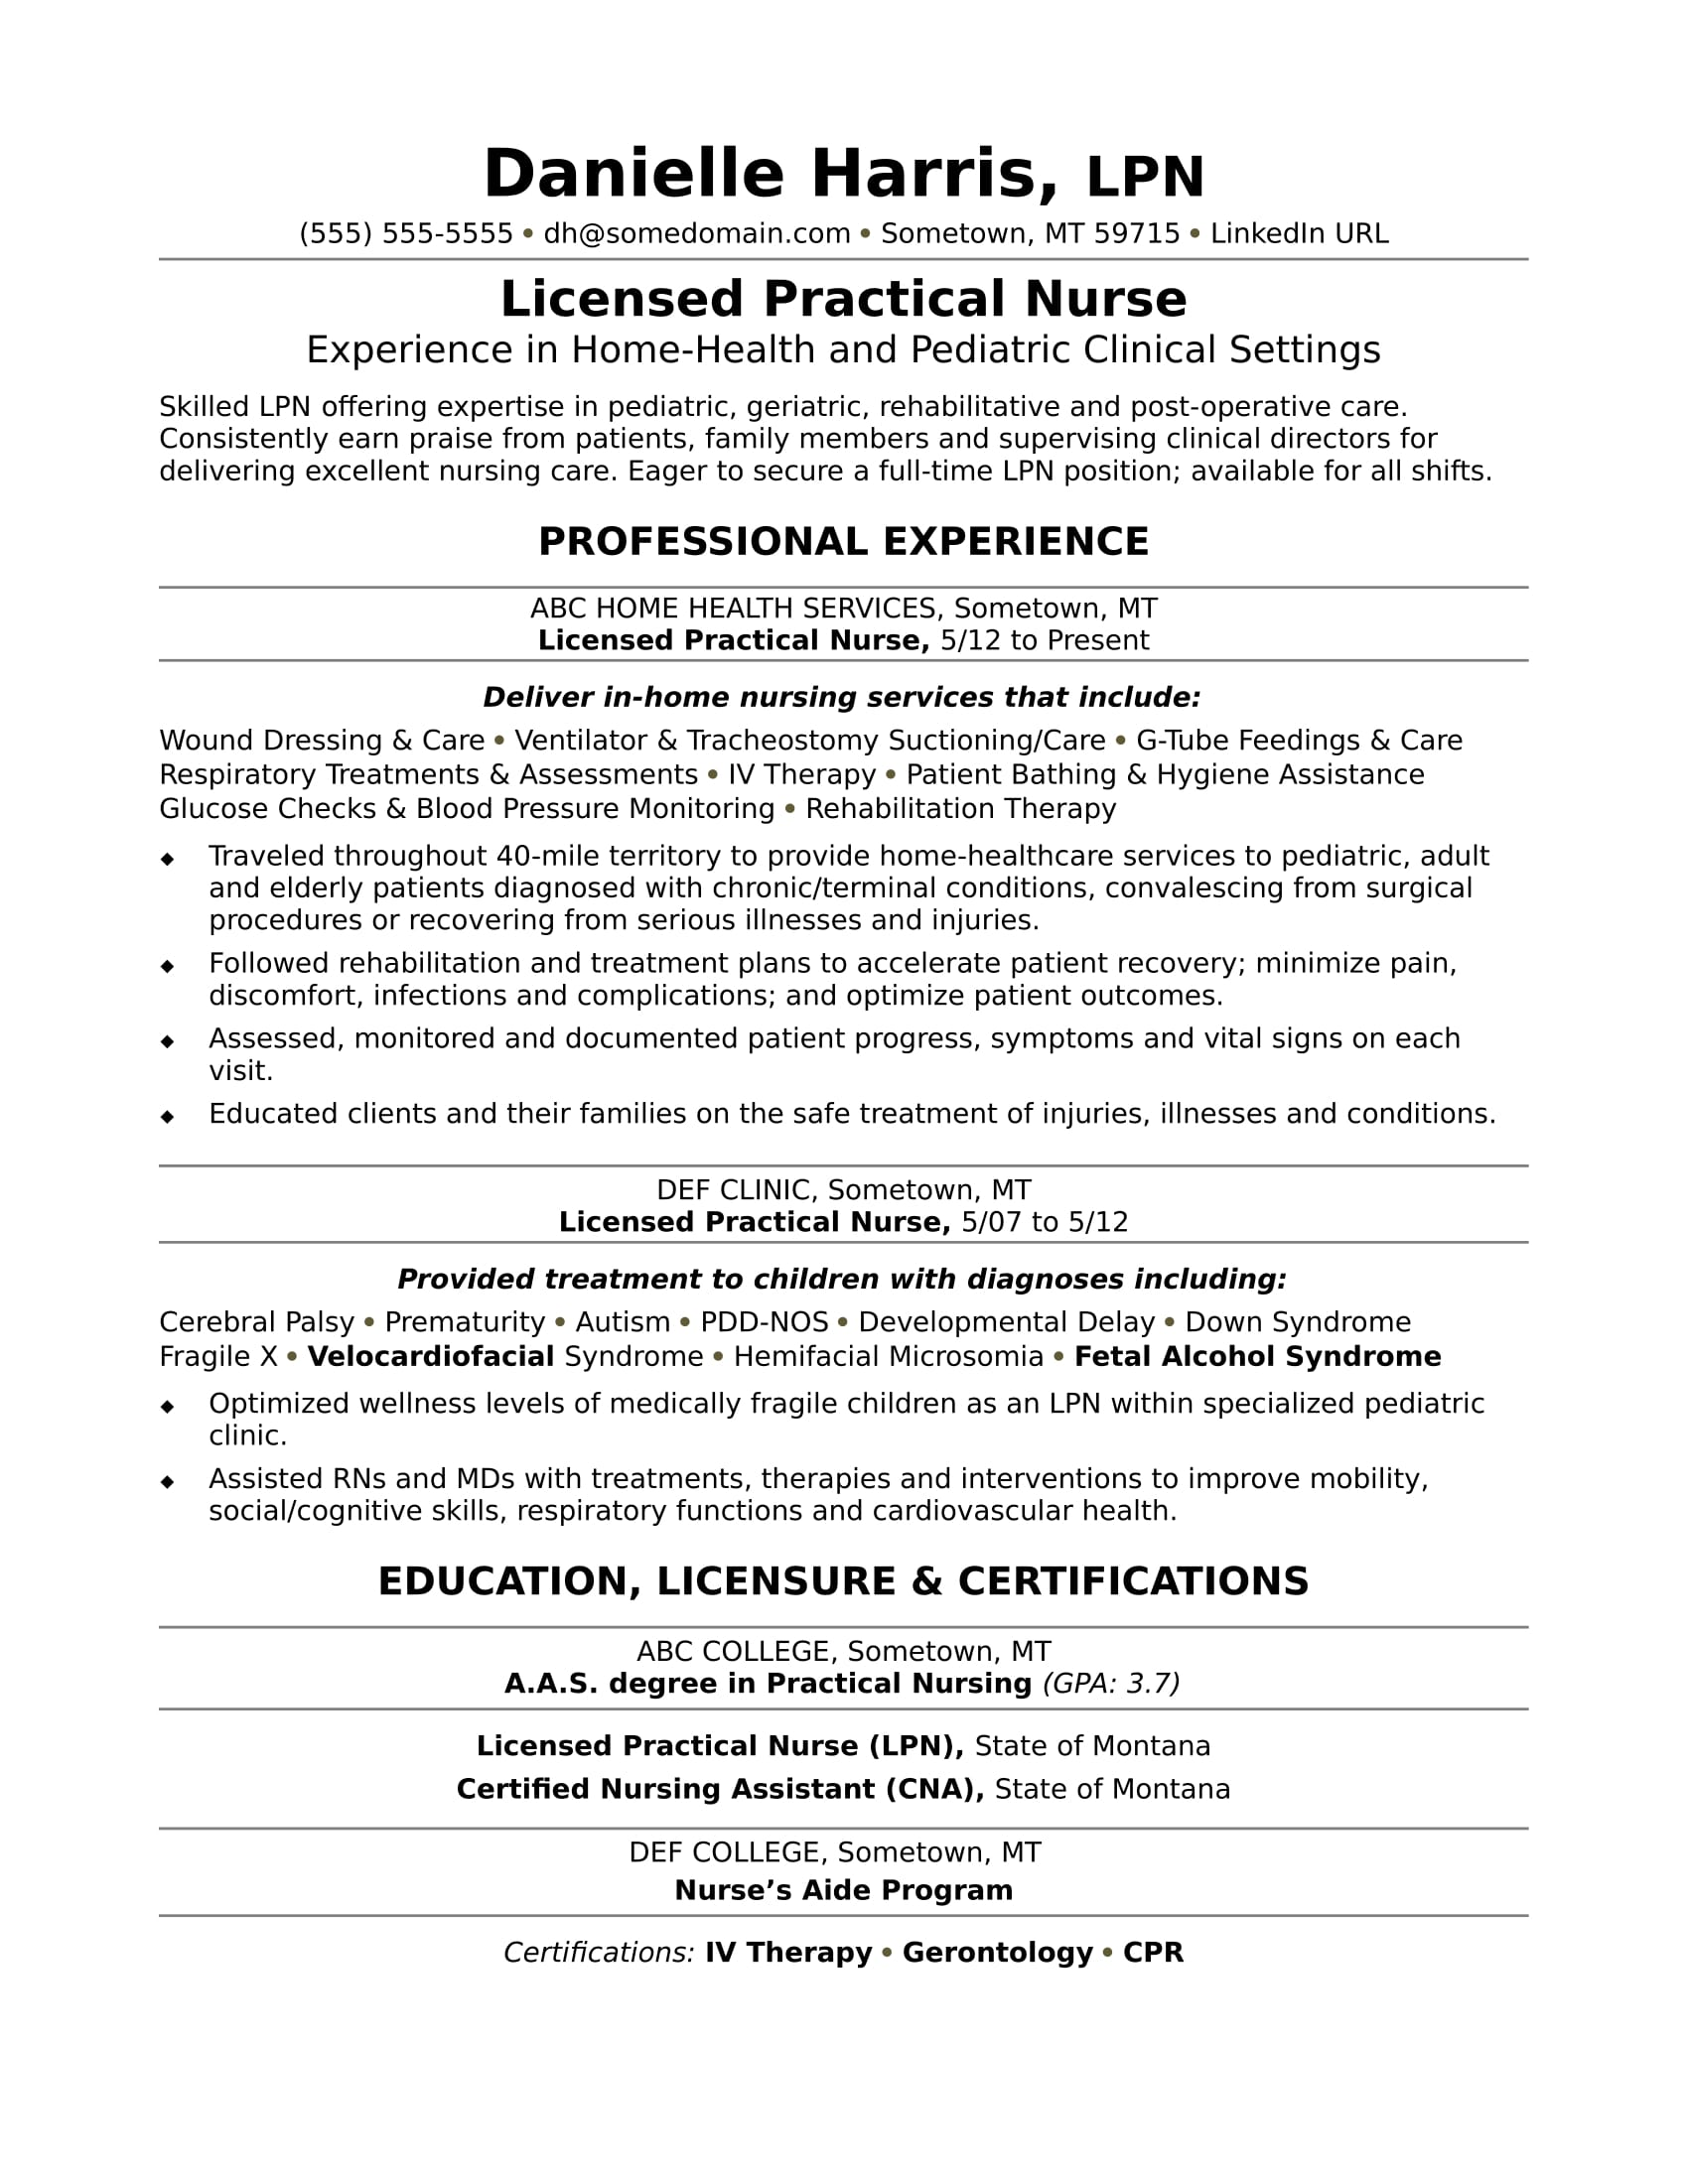 Licensed Practical Nurse Resume Sample  Successful Resume Examples